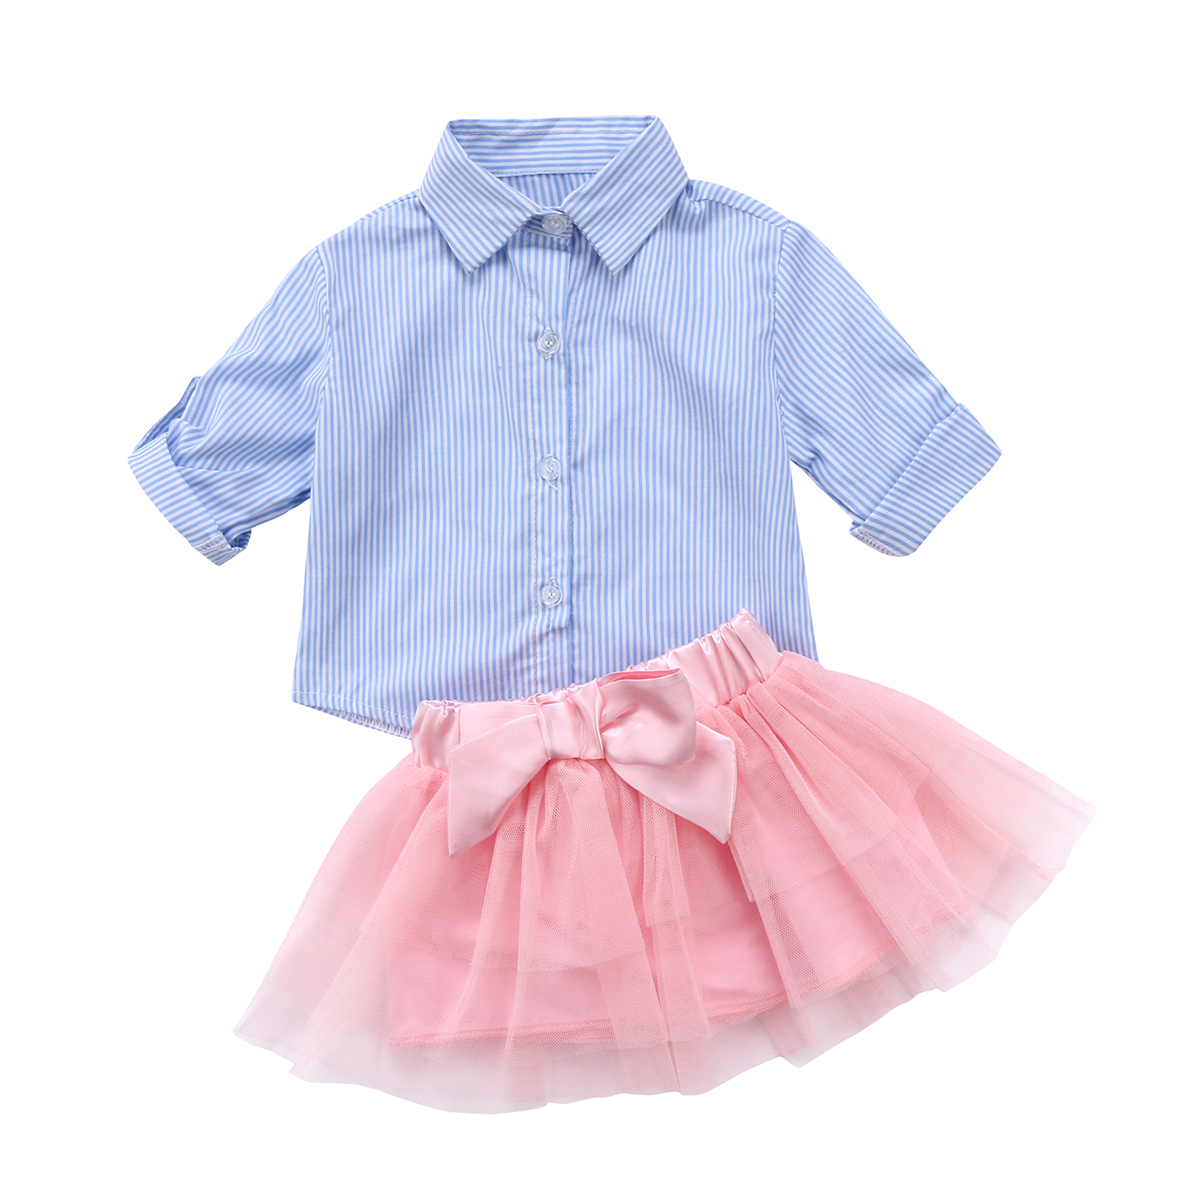 Toddler Kid Baby Girls Clothing T-shirt Top Striped Lace Tutu Skirt Bow 2pcs Outfits Set Clothes Girl цены